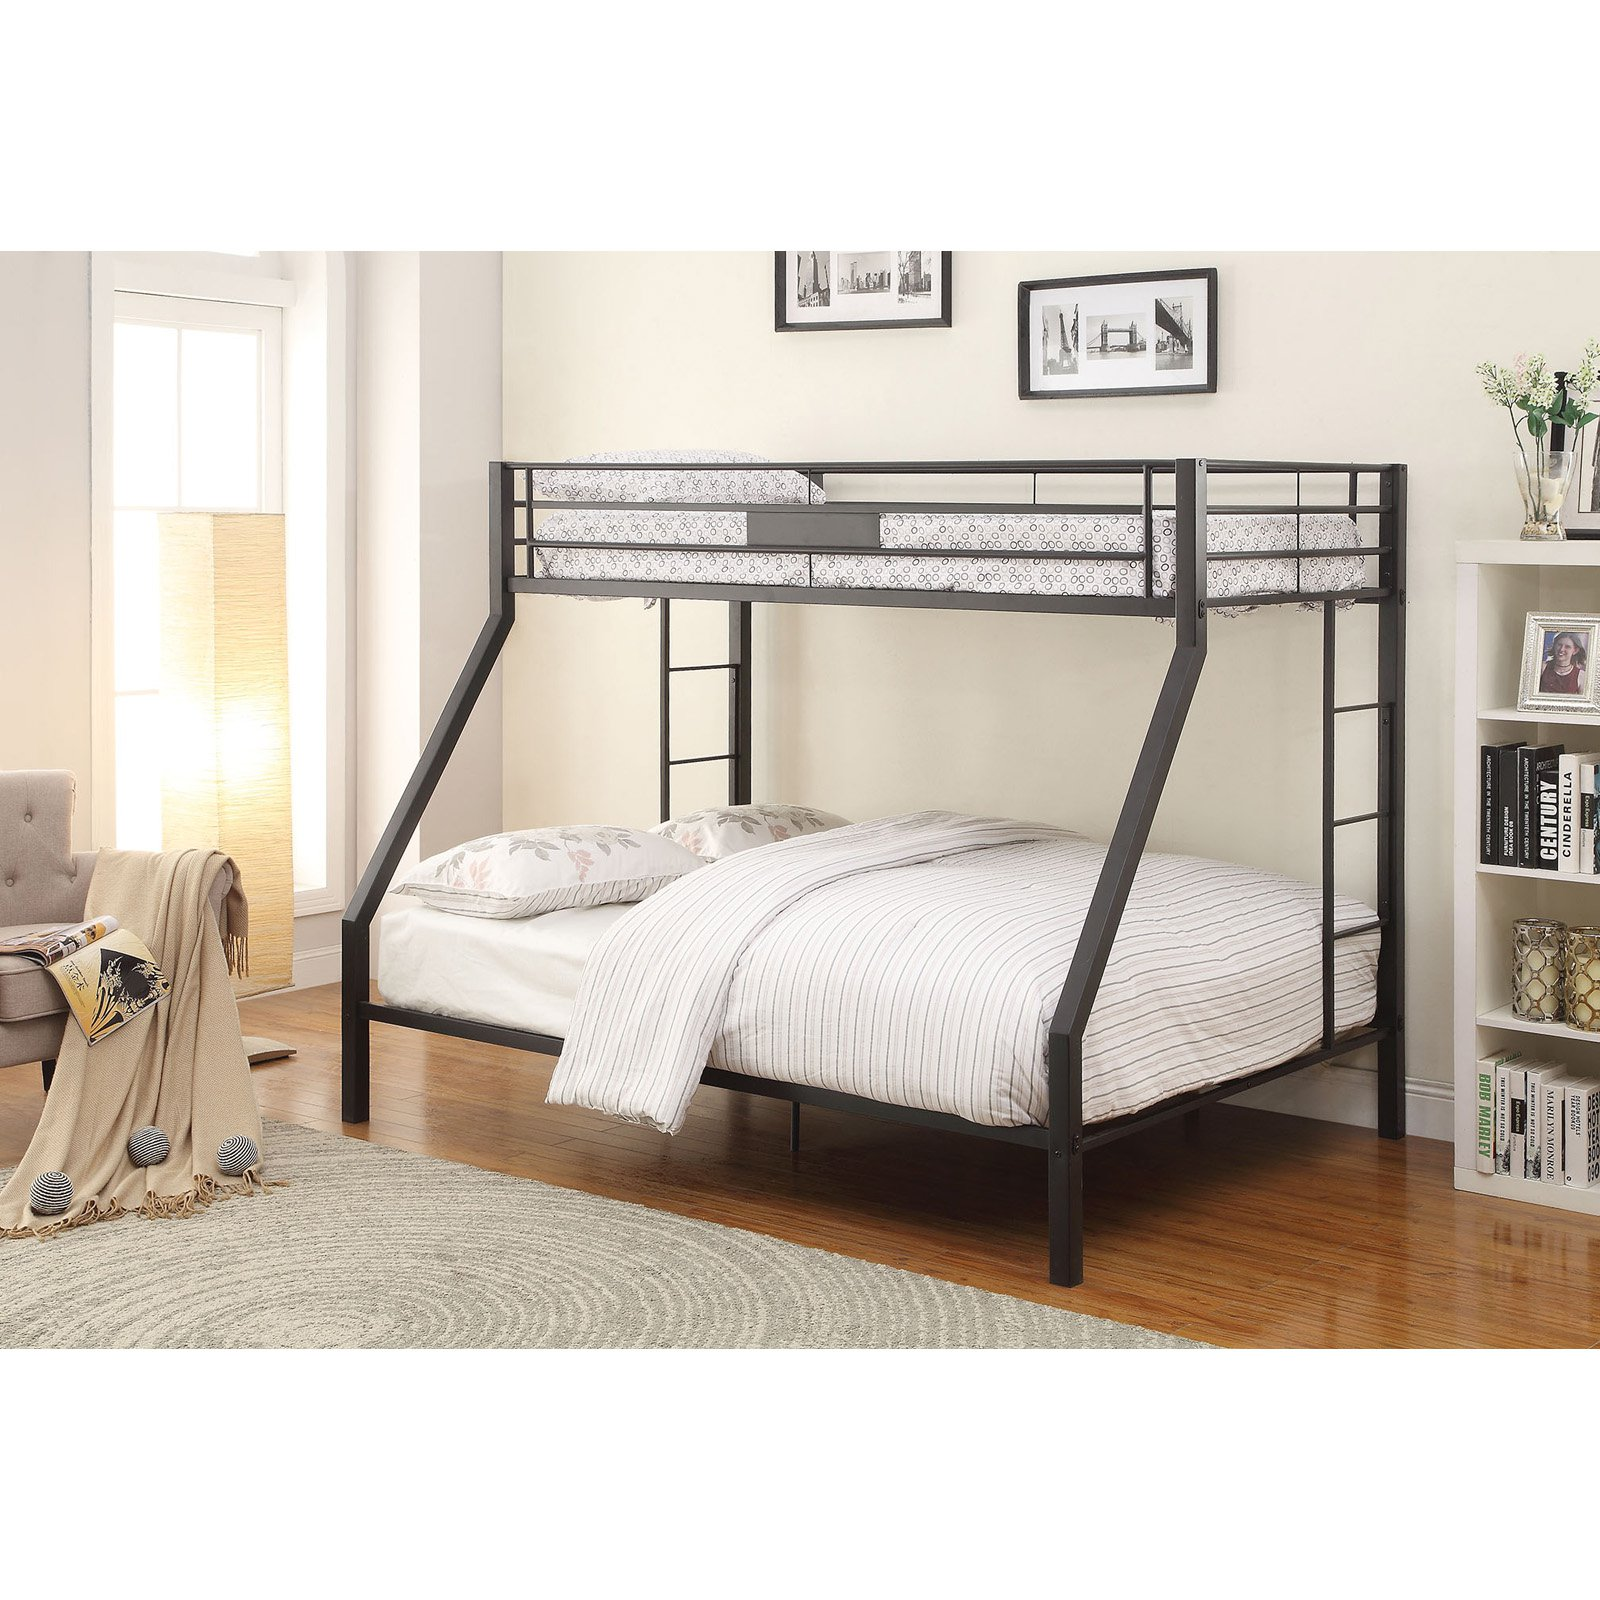 ACME Limbra Twin XL over Queen Bunk Bed in Sandy Black, Multiple Sizes